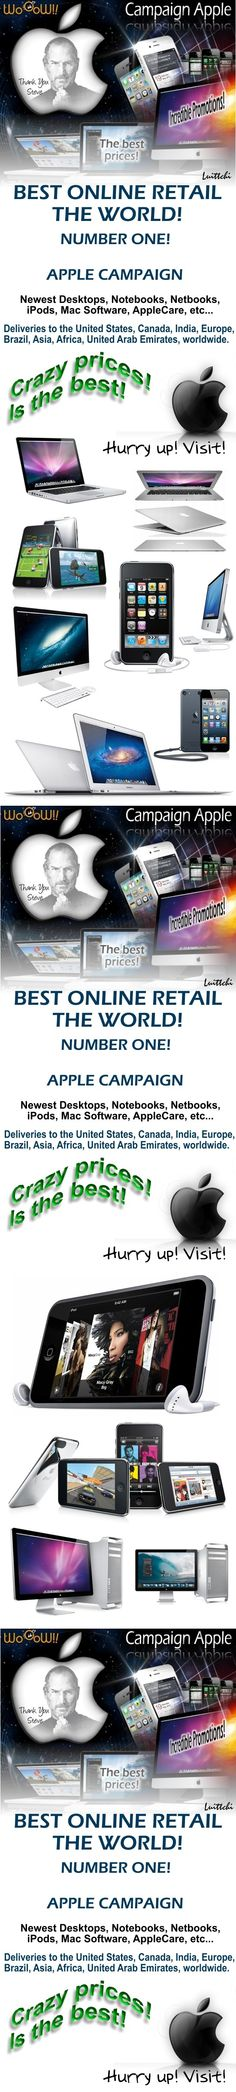 APPLE - CAMPAIGN. * The best prices! Promotions for you! * Many Desktops, Notebooks, iPhones, iPods, iPads, everything for you! WoOoW!! HURRY UP!   BEST ONLINE RETAIL ALL OVER THE WORLD. NUMBER ONE! Best prices!  * Deliveries to the United States, Canada, India, Europe, Brazil, Asia, Africa, United Arab Emirates, for WORLD. With security and very professionalism. More informations in my WoOoW!! websites > http://woelec2.weebly.com/campaigns.html